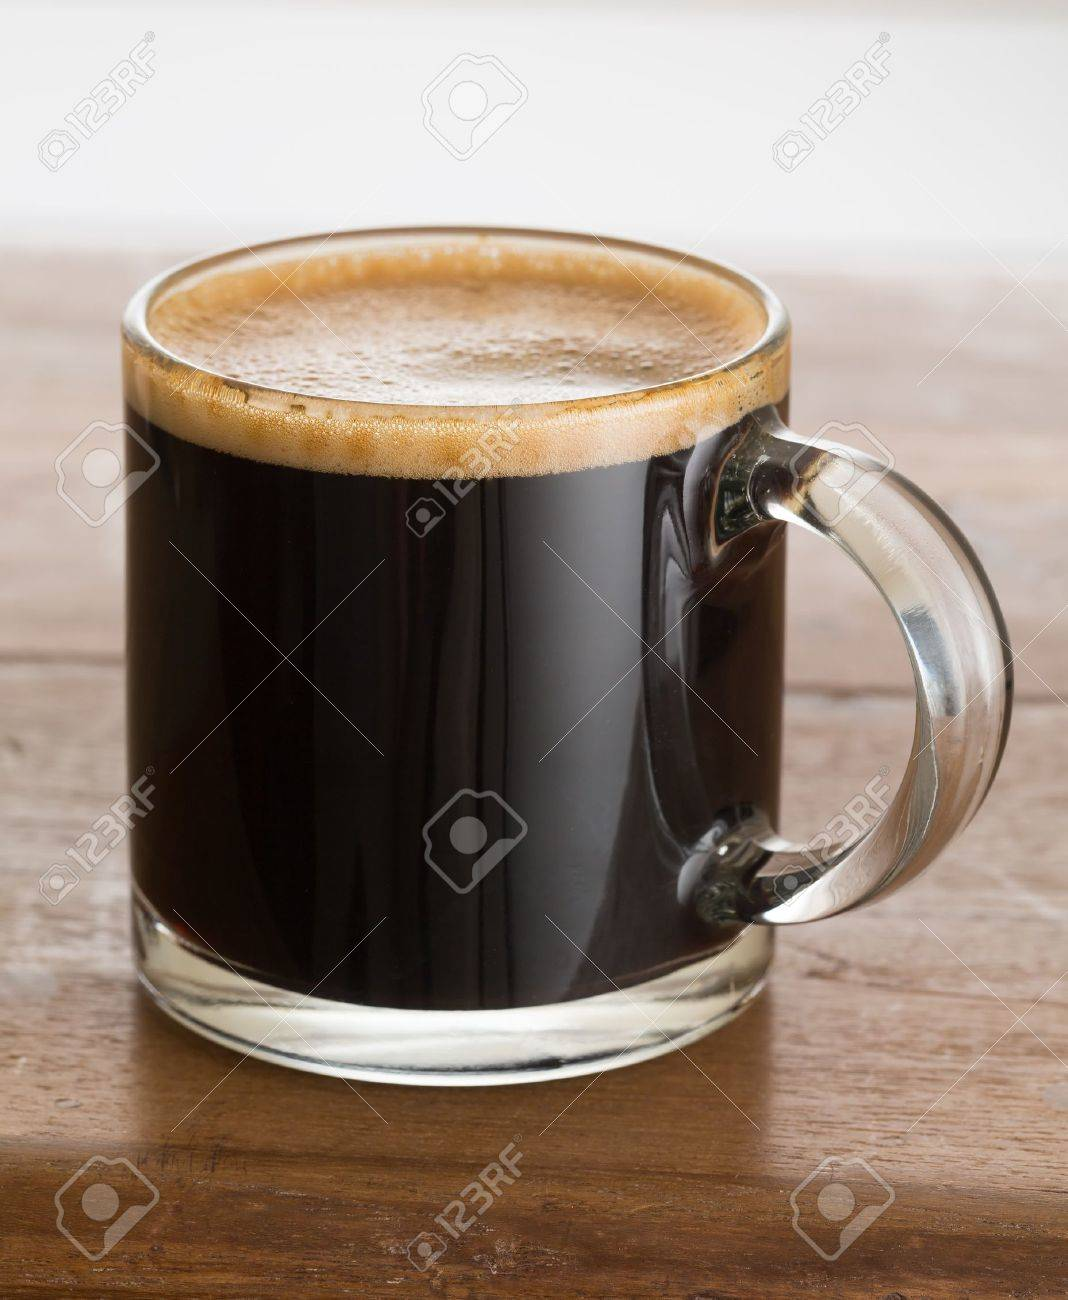 black expresso coffee in small glass cup on wooden table stock